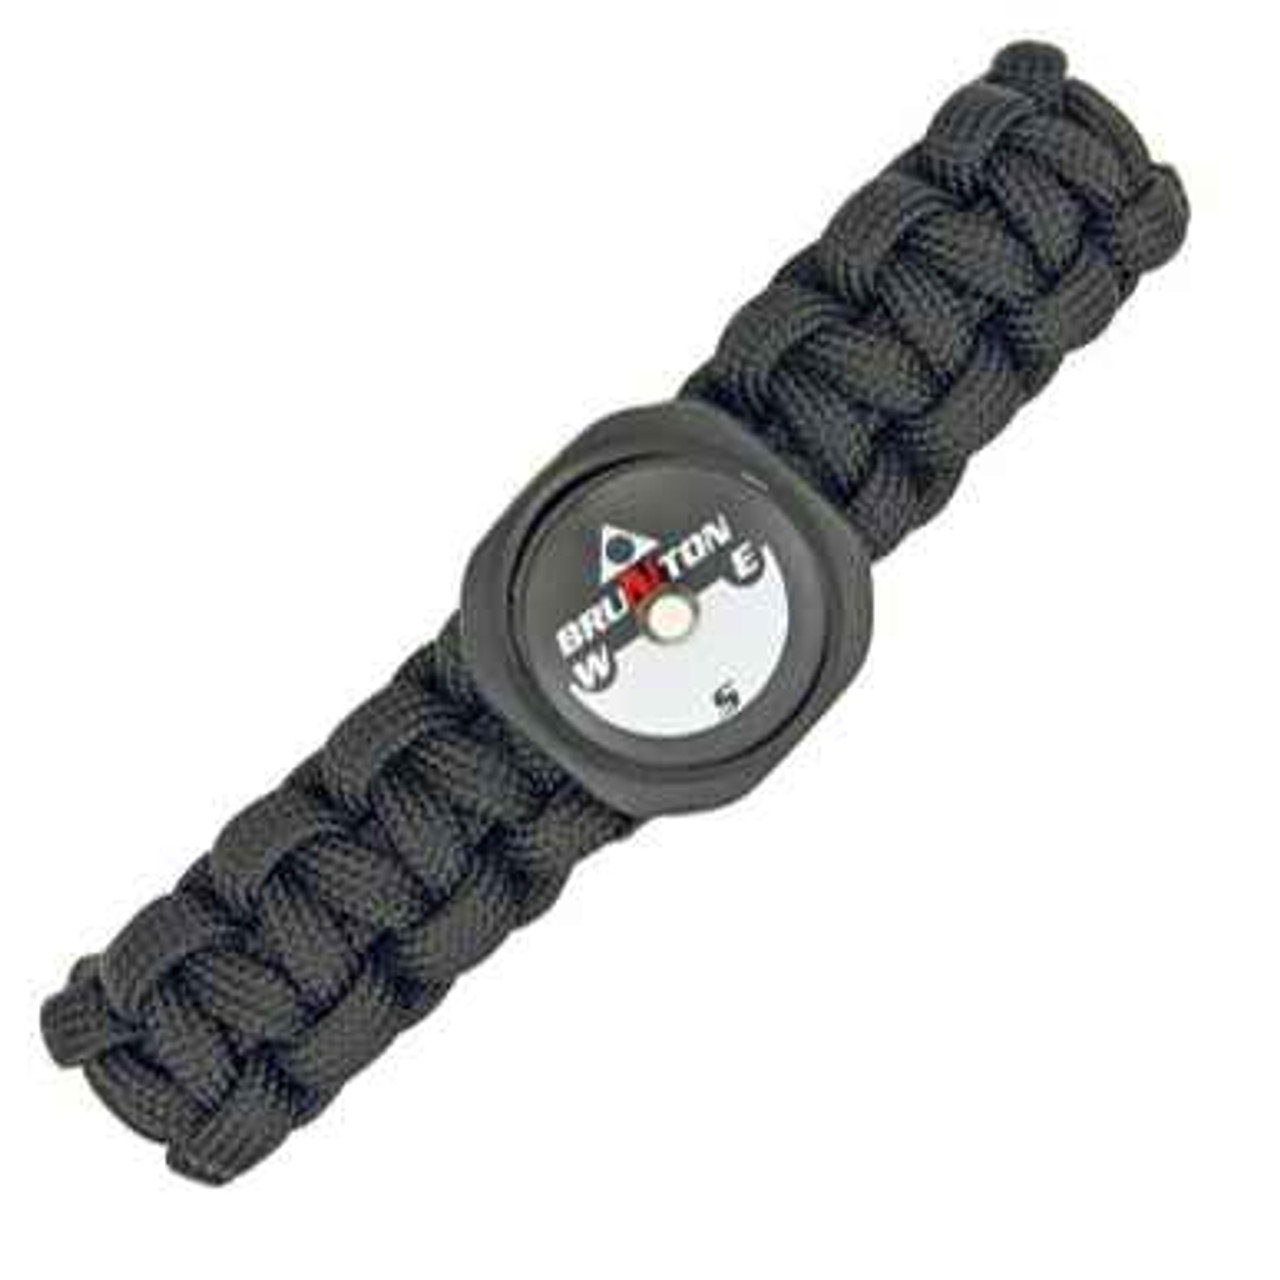 Para Cord Survival Bracelet with Compass. Black Size Small